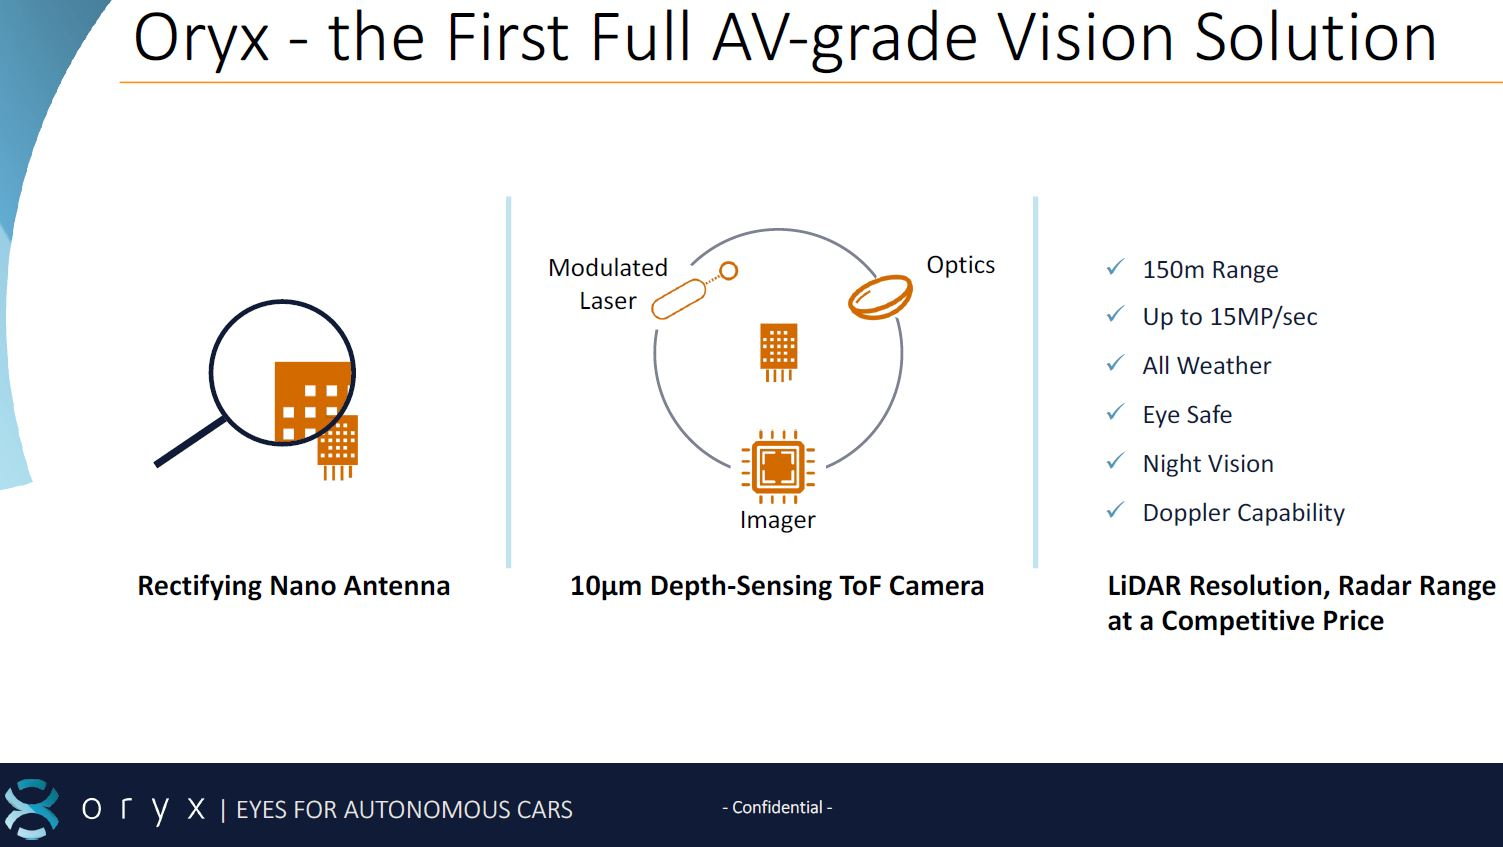 Automotive LiDAR Companies Raise $216M in One Month - F4News